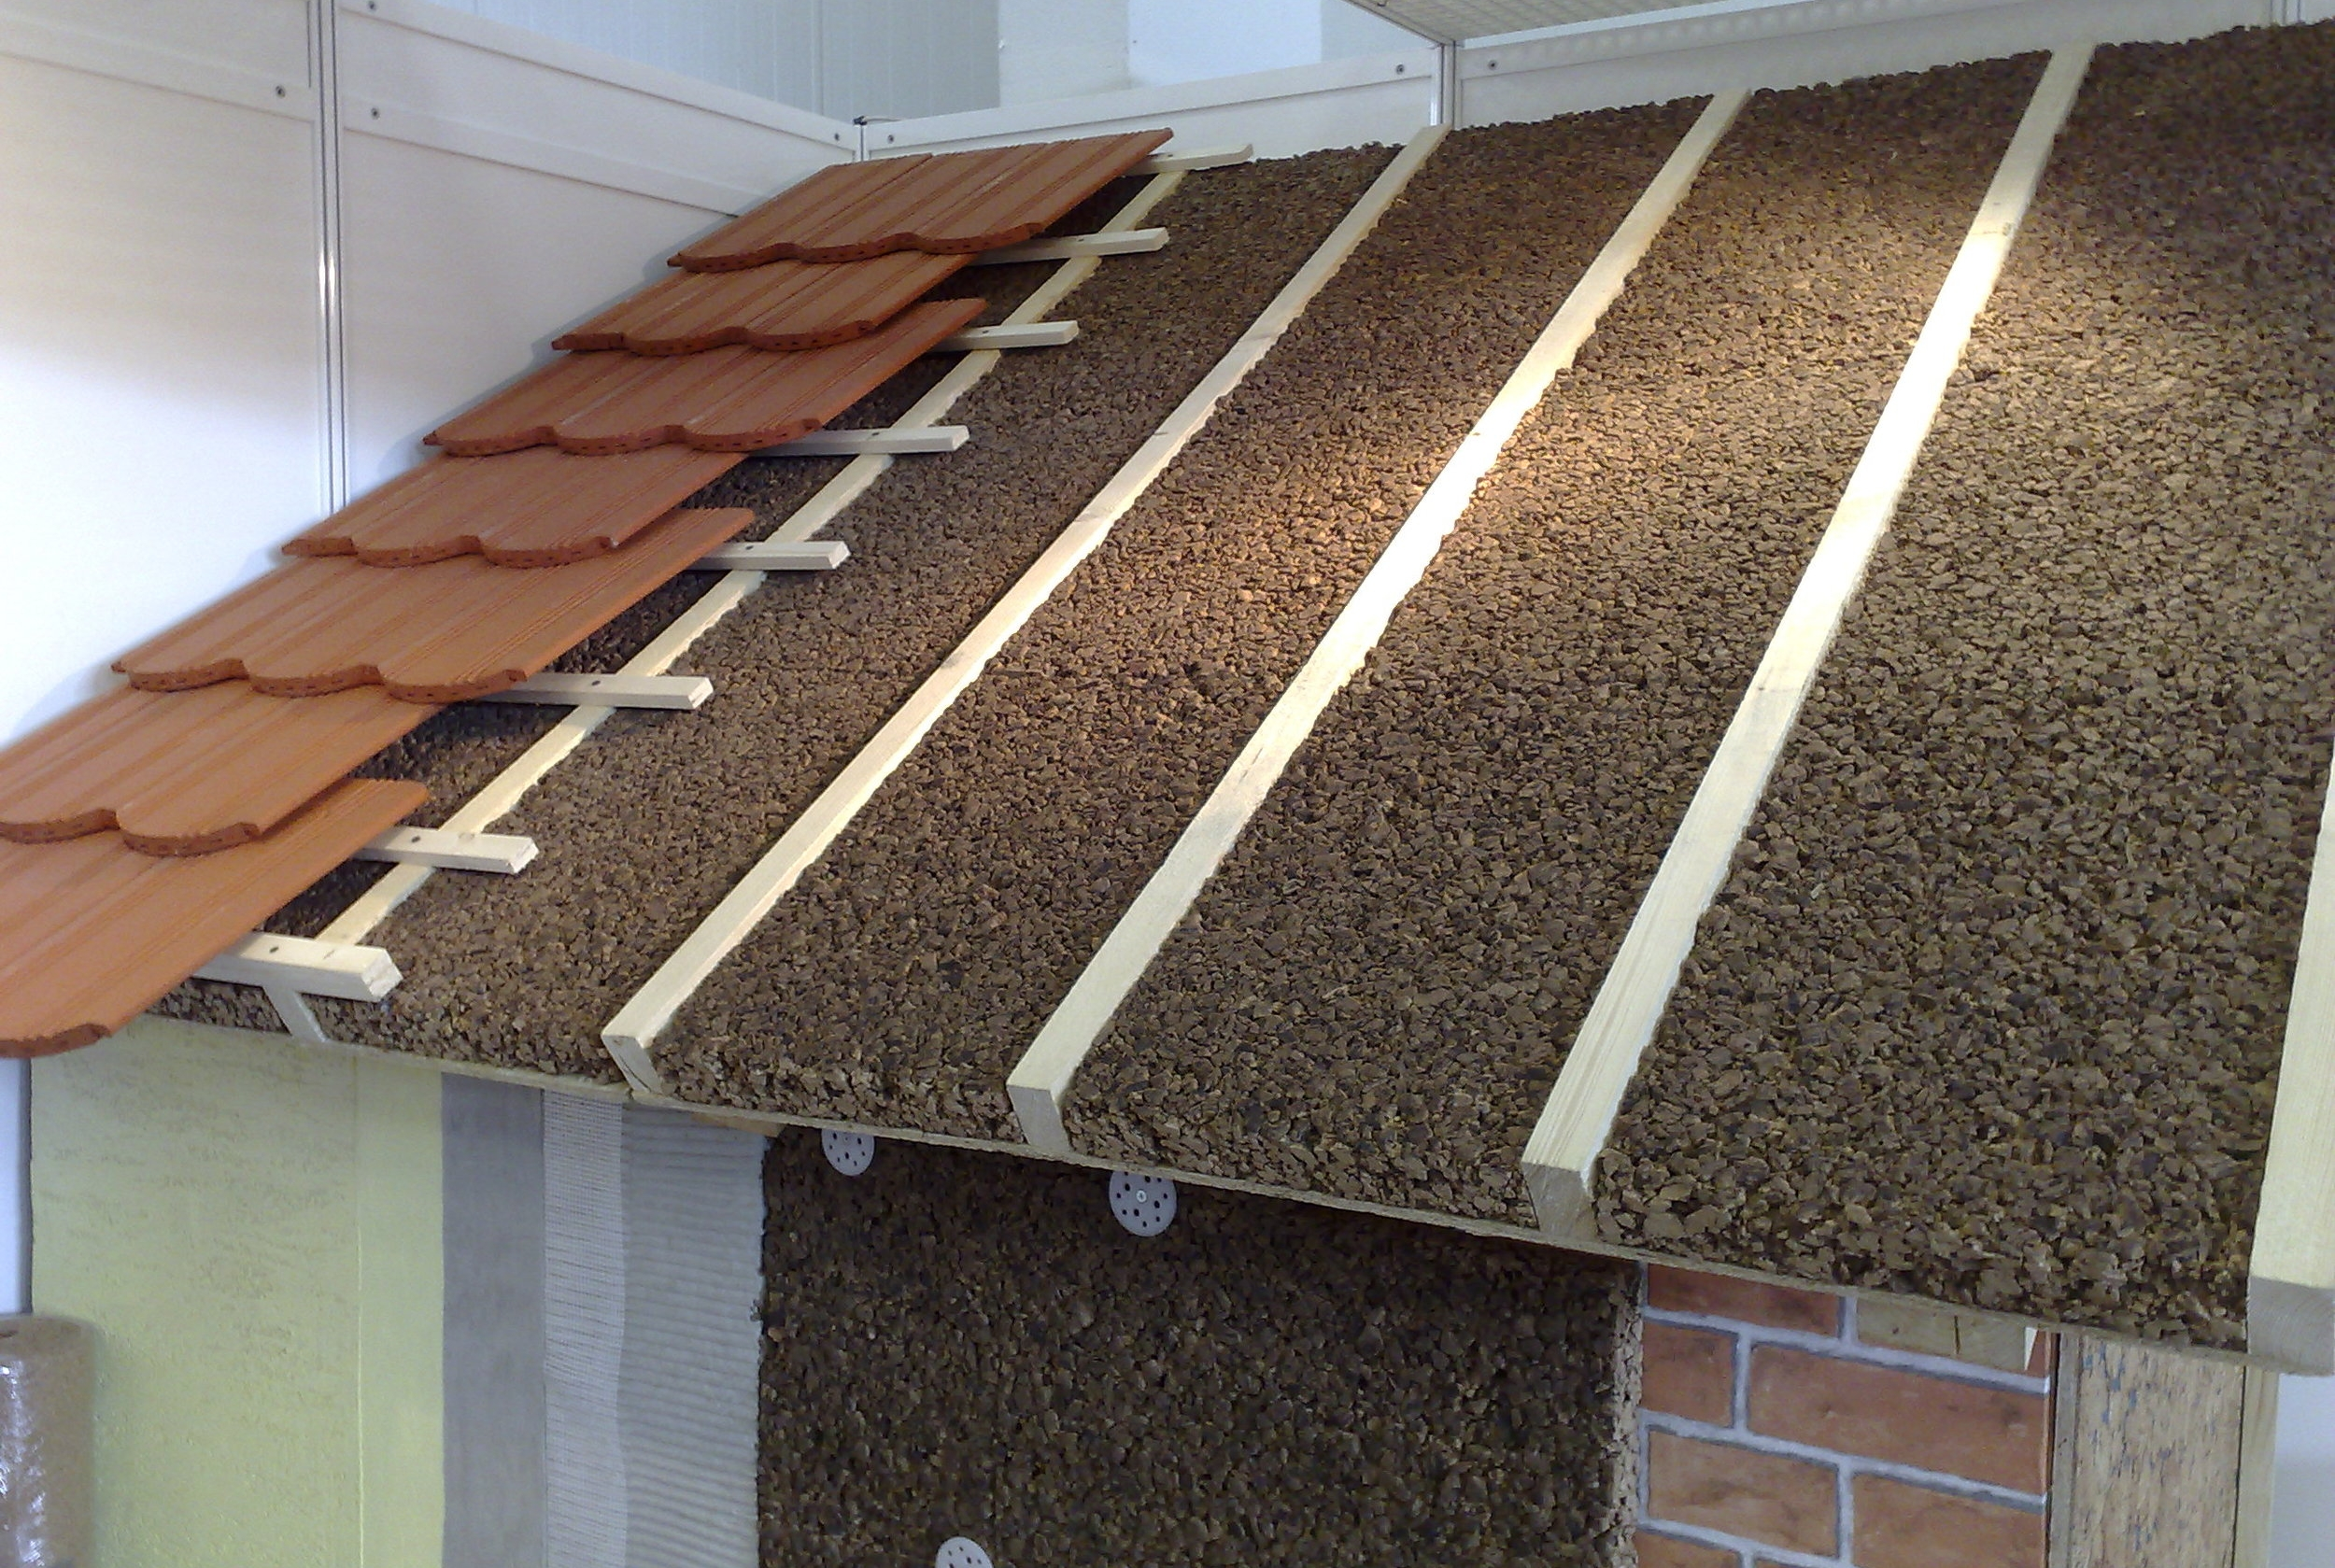 jelinek-cork-insulation.jpg